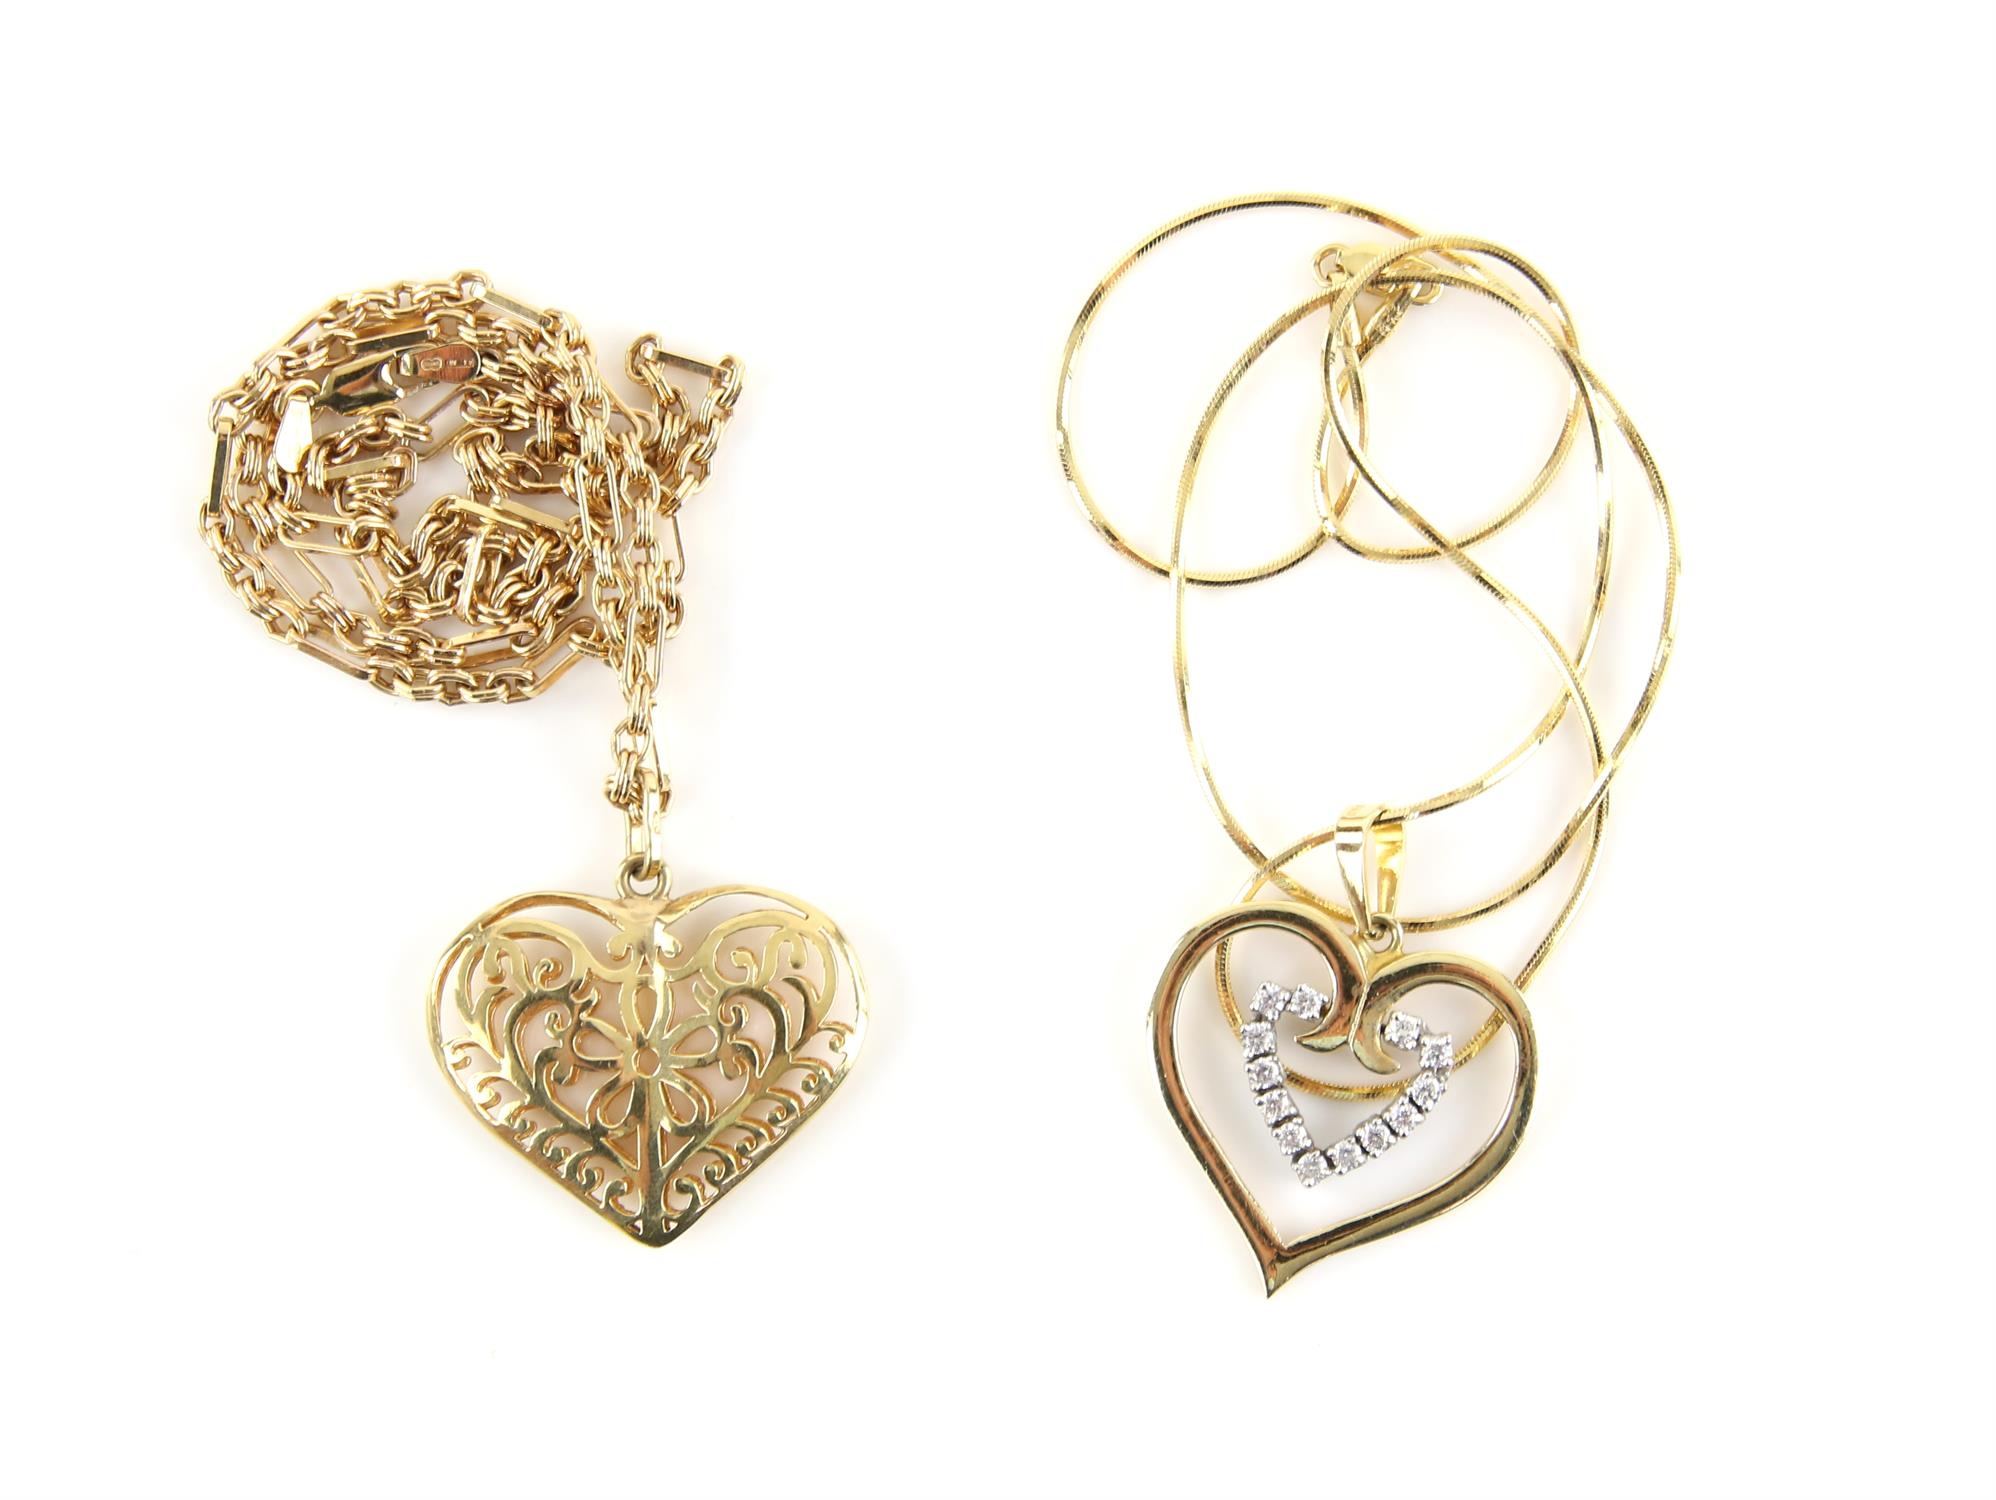 Two heart necklaces, including a filigree puff heart on a fancy link chain, in 9 ct, - Image 2 of 2